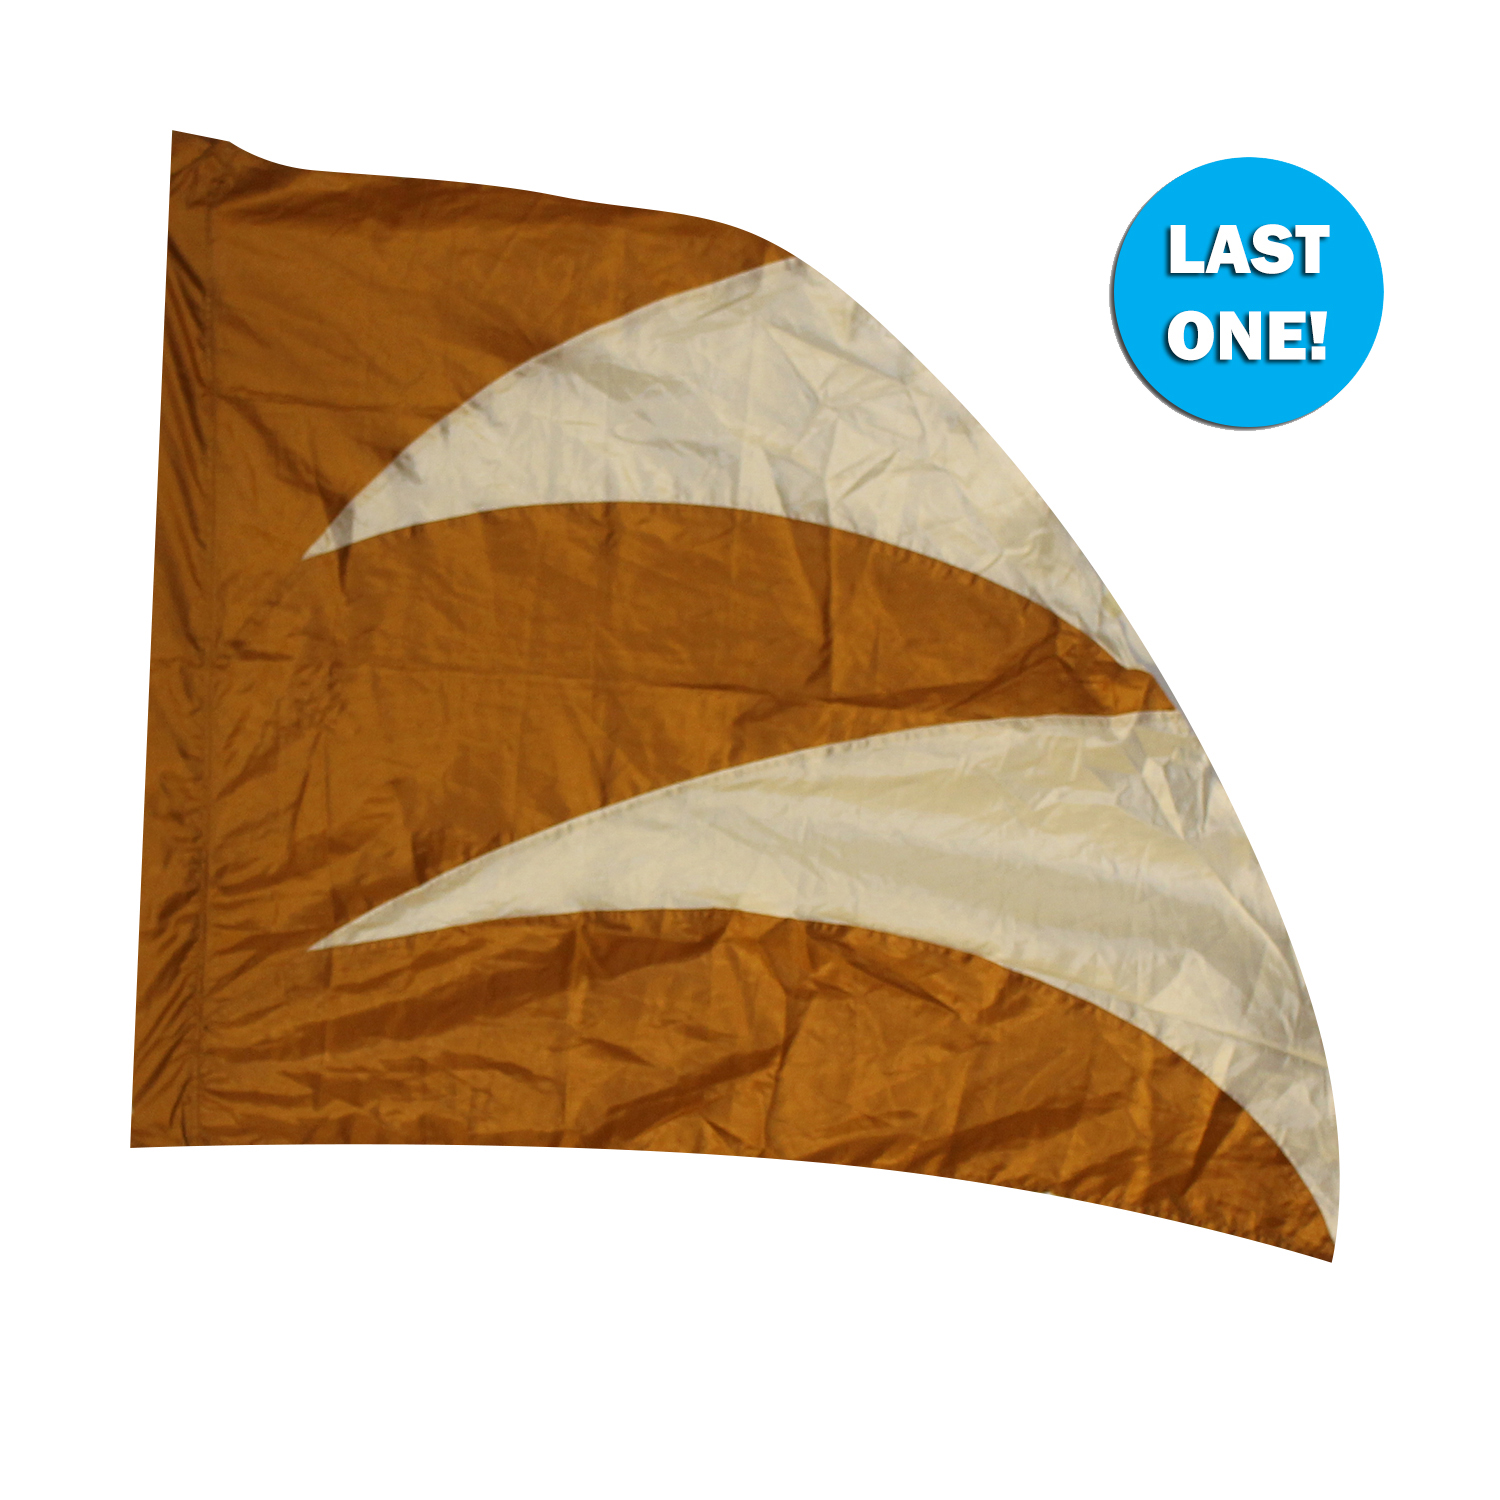 Closeout Flags: 090213